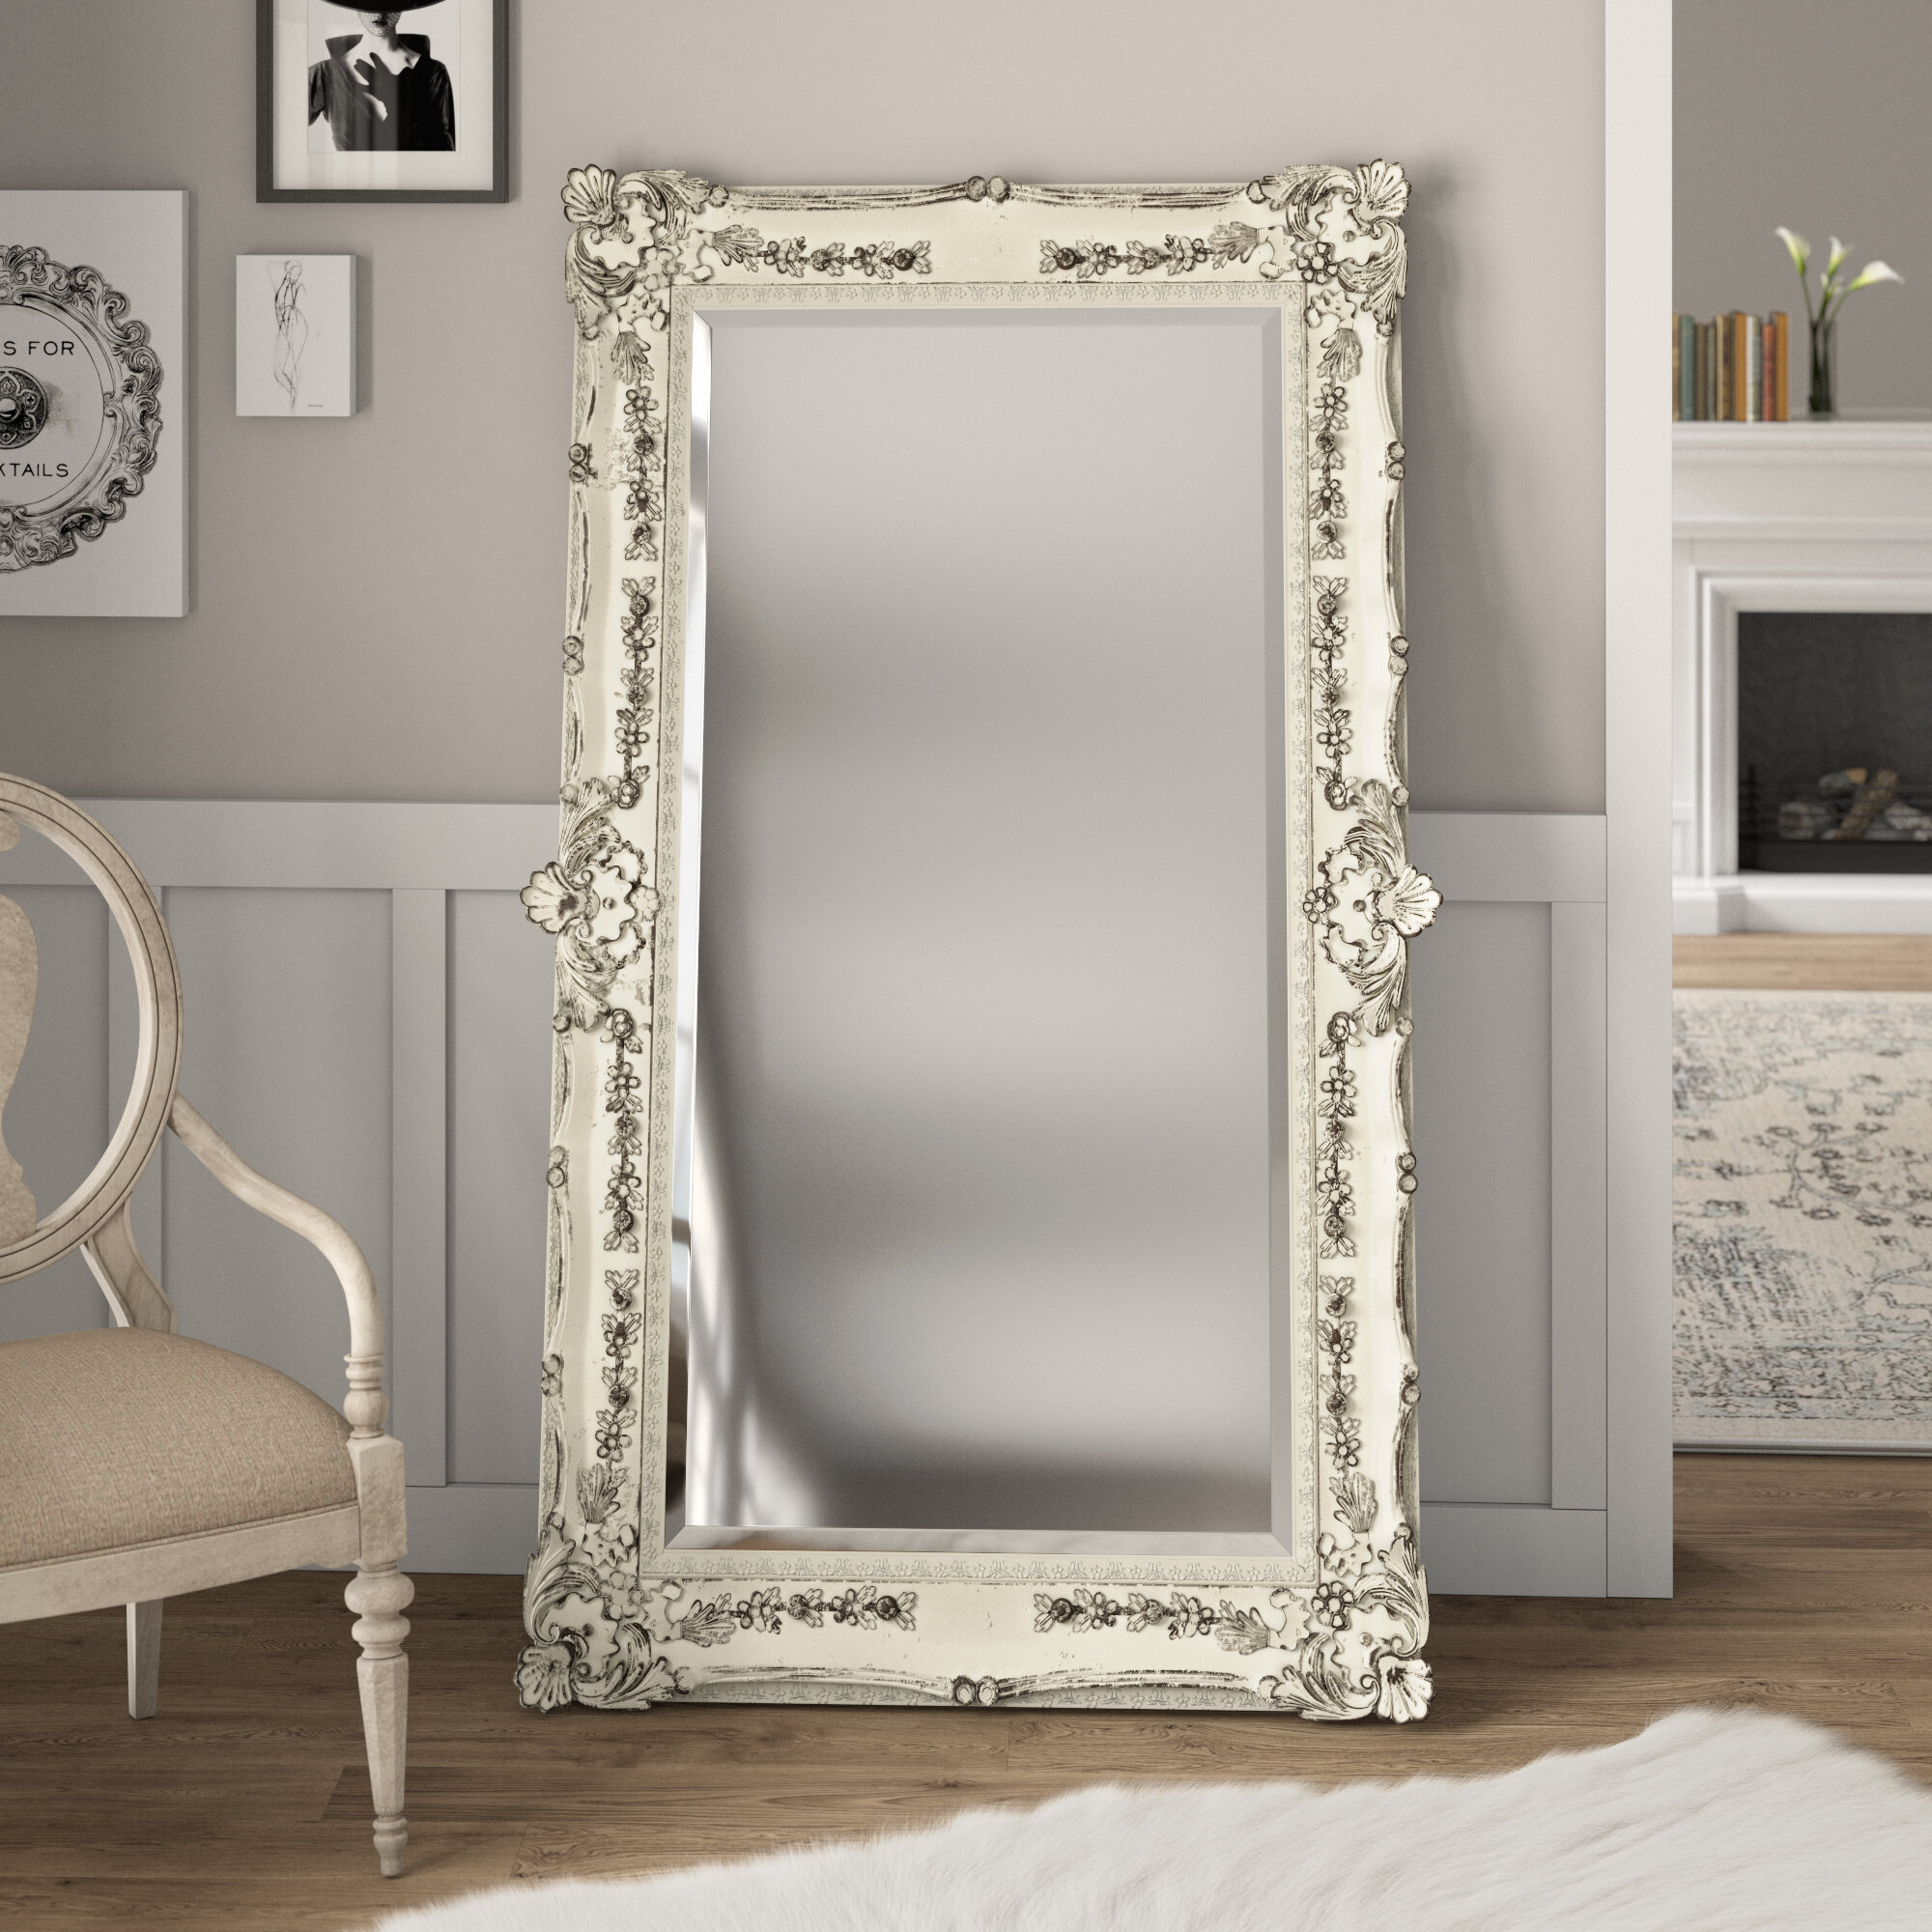 White Full Mirror | Wayfair Within Dalessio Wide Tall Full Length Mirrors (Image 19 of 20)